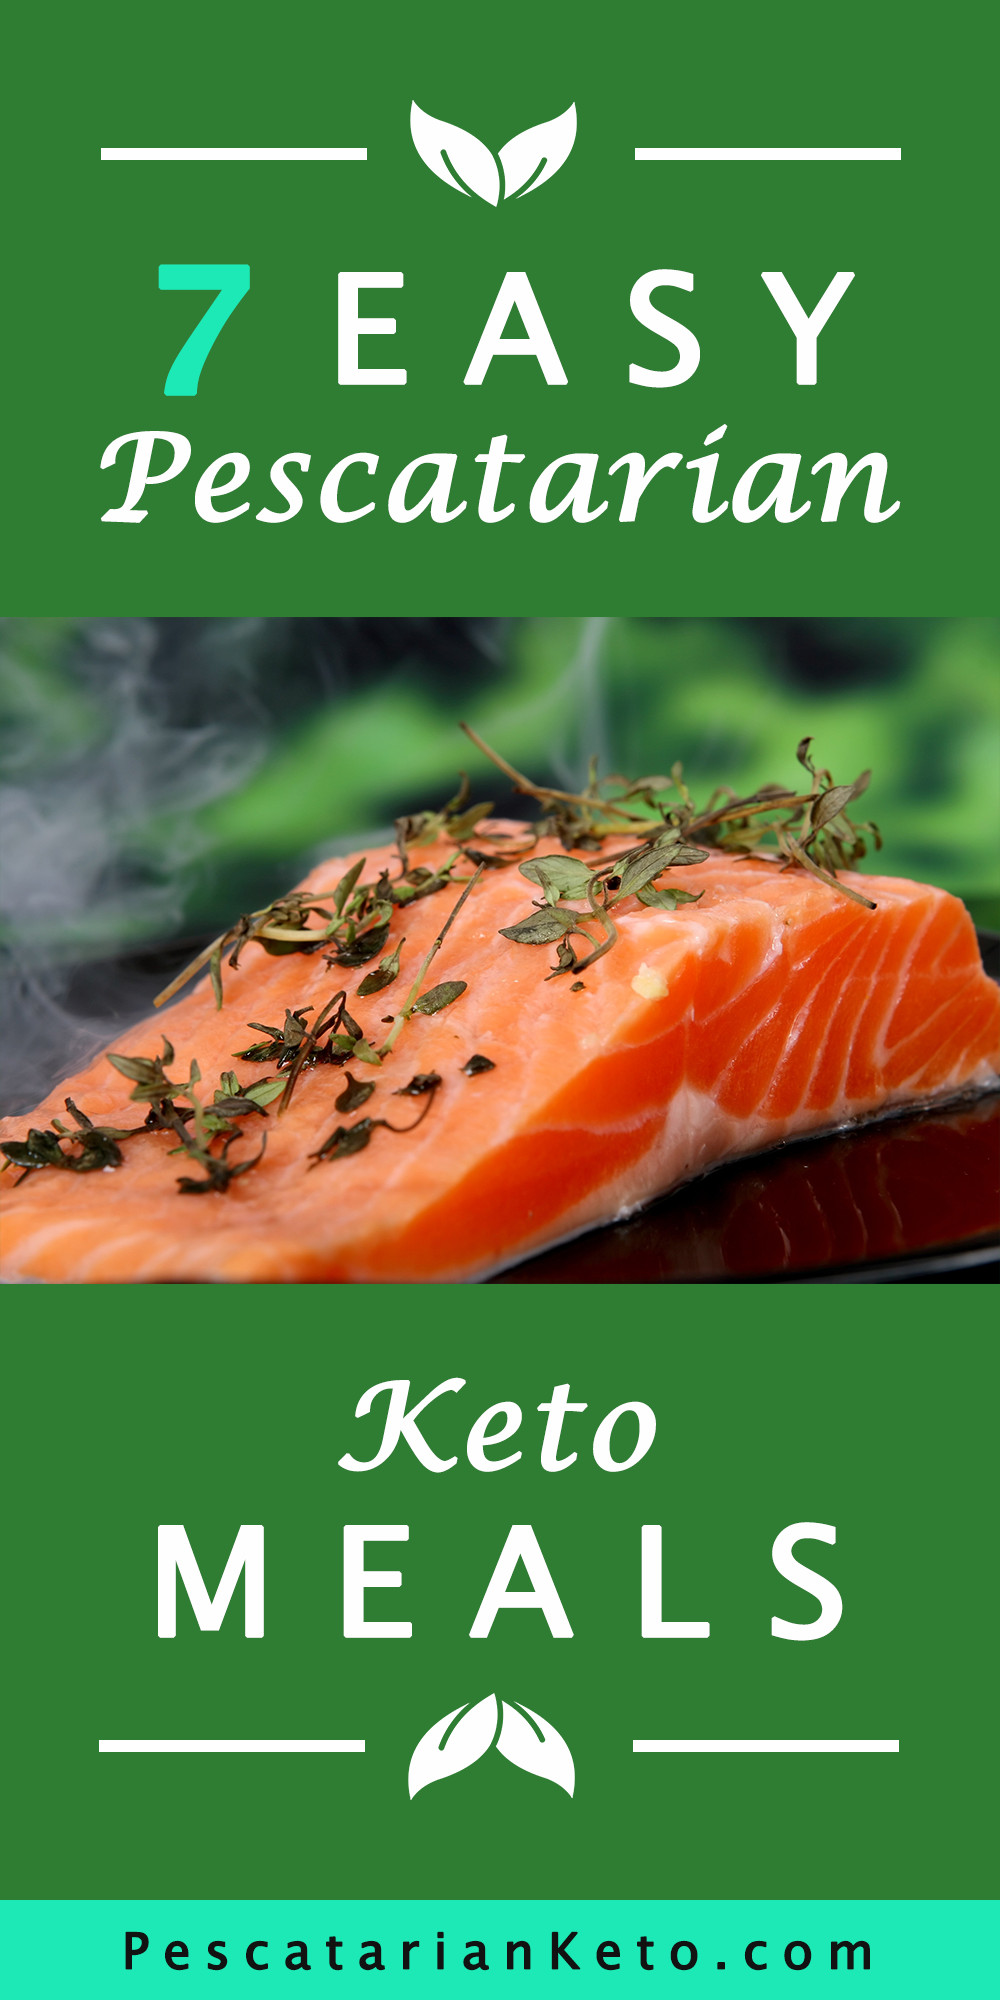 Pescatarian Keto Diet For Beginners  7 Quick and Easy Pescatarian Keto Meals You ll Love Eating